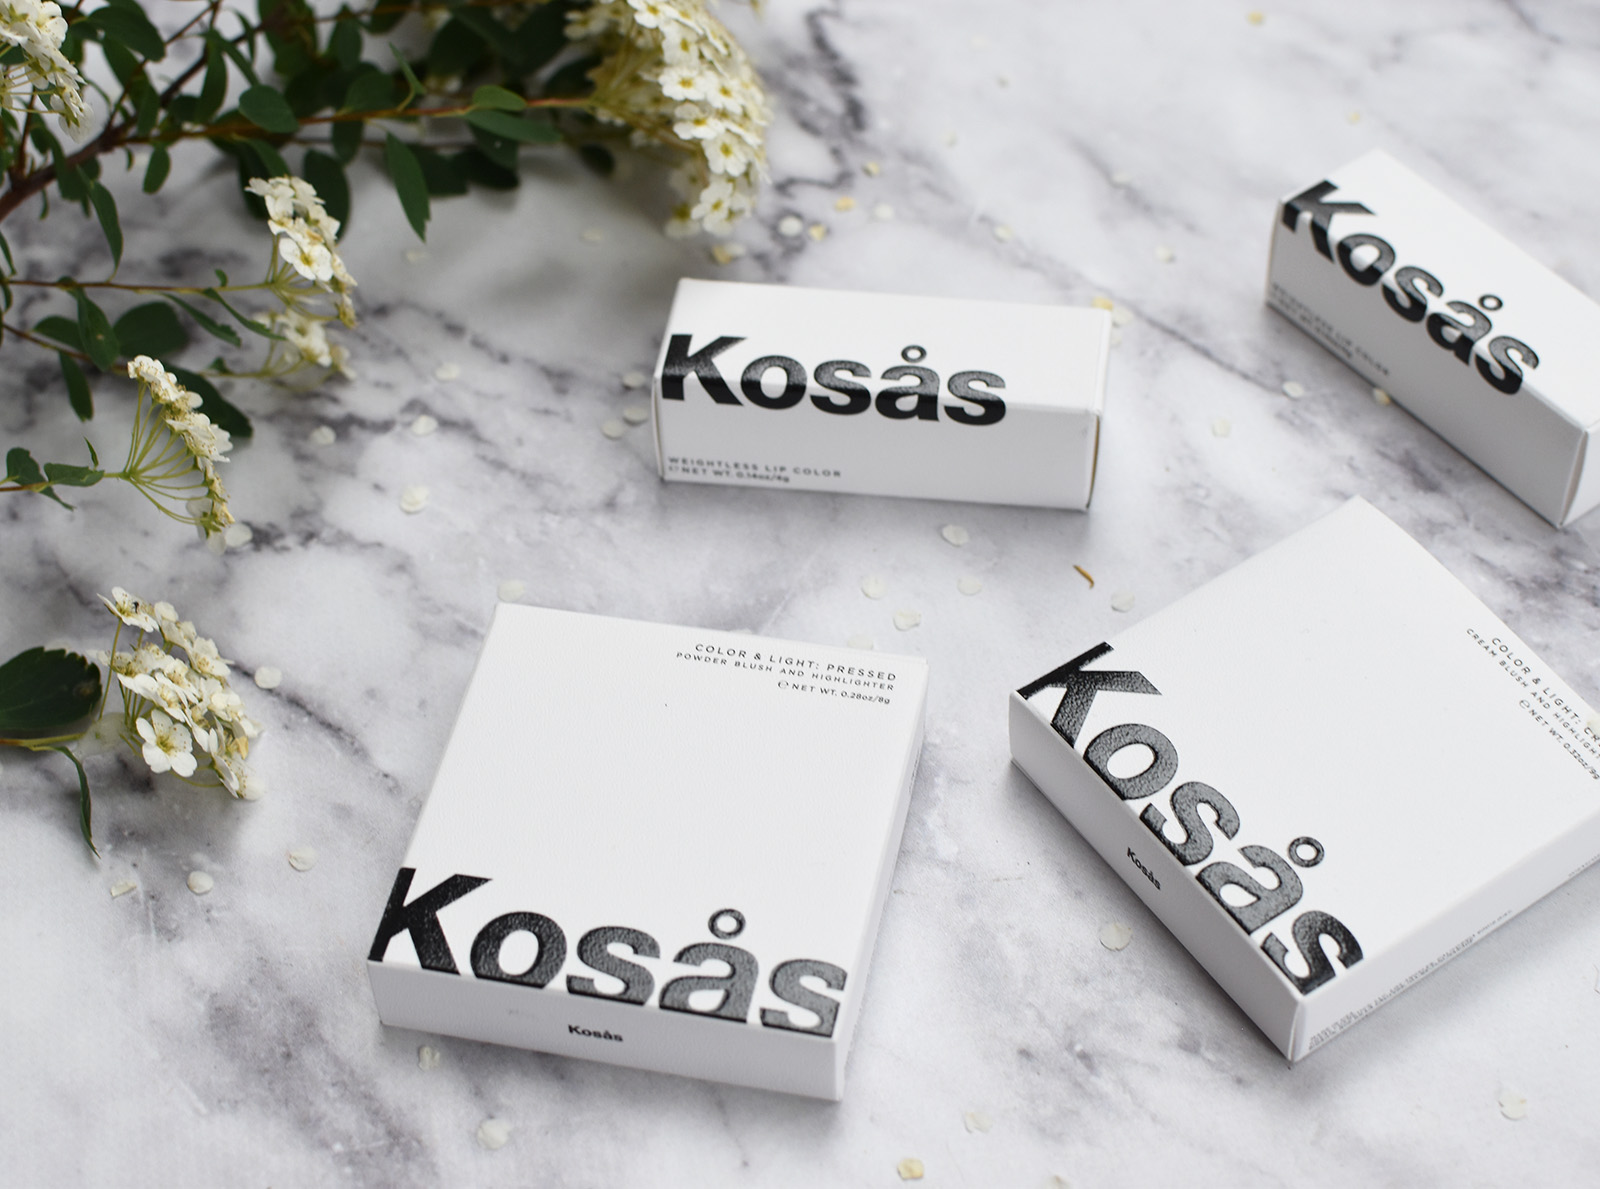 Kosas Alter Ego Modern Romance Set Review Swatches